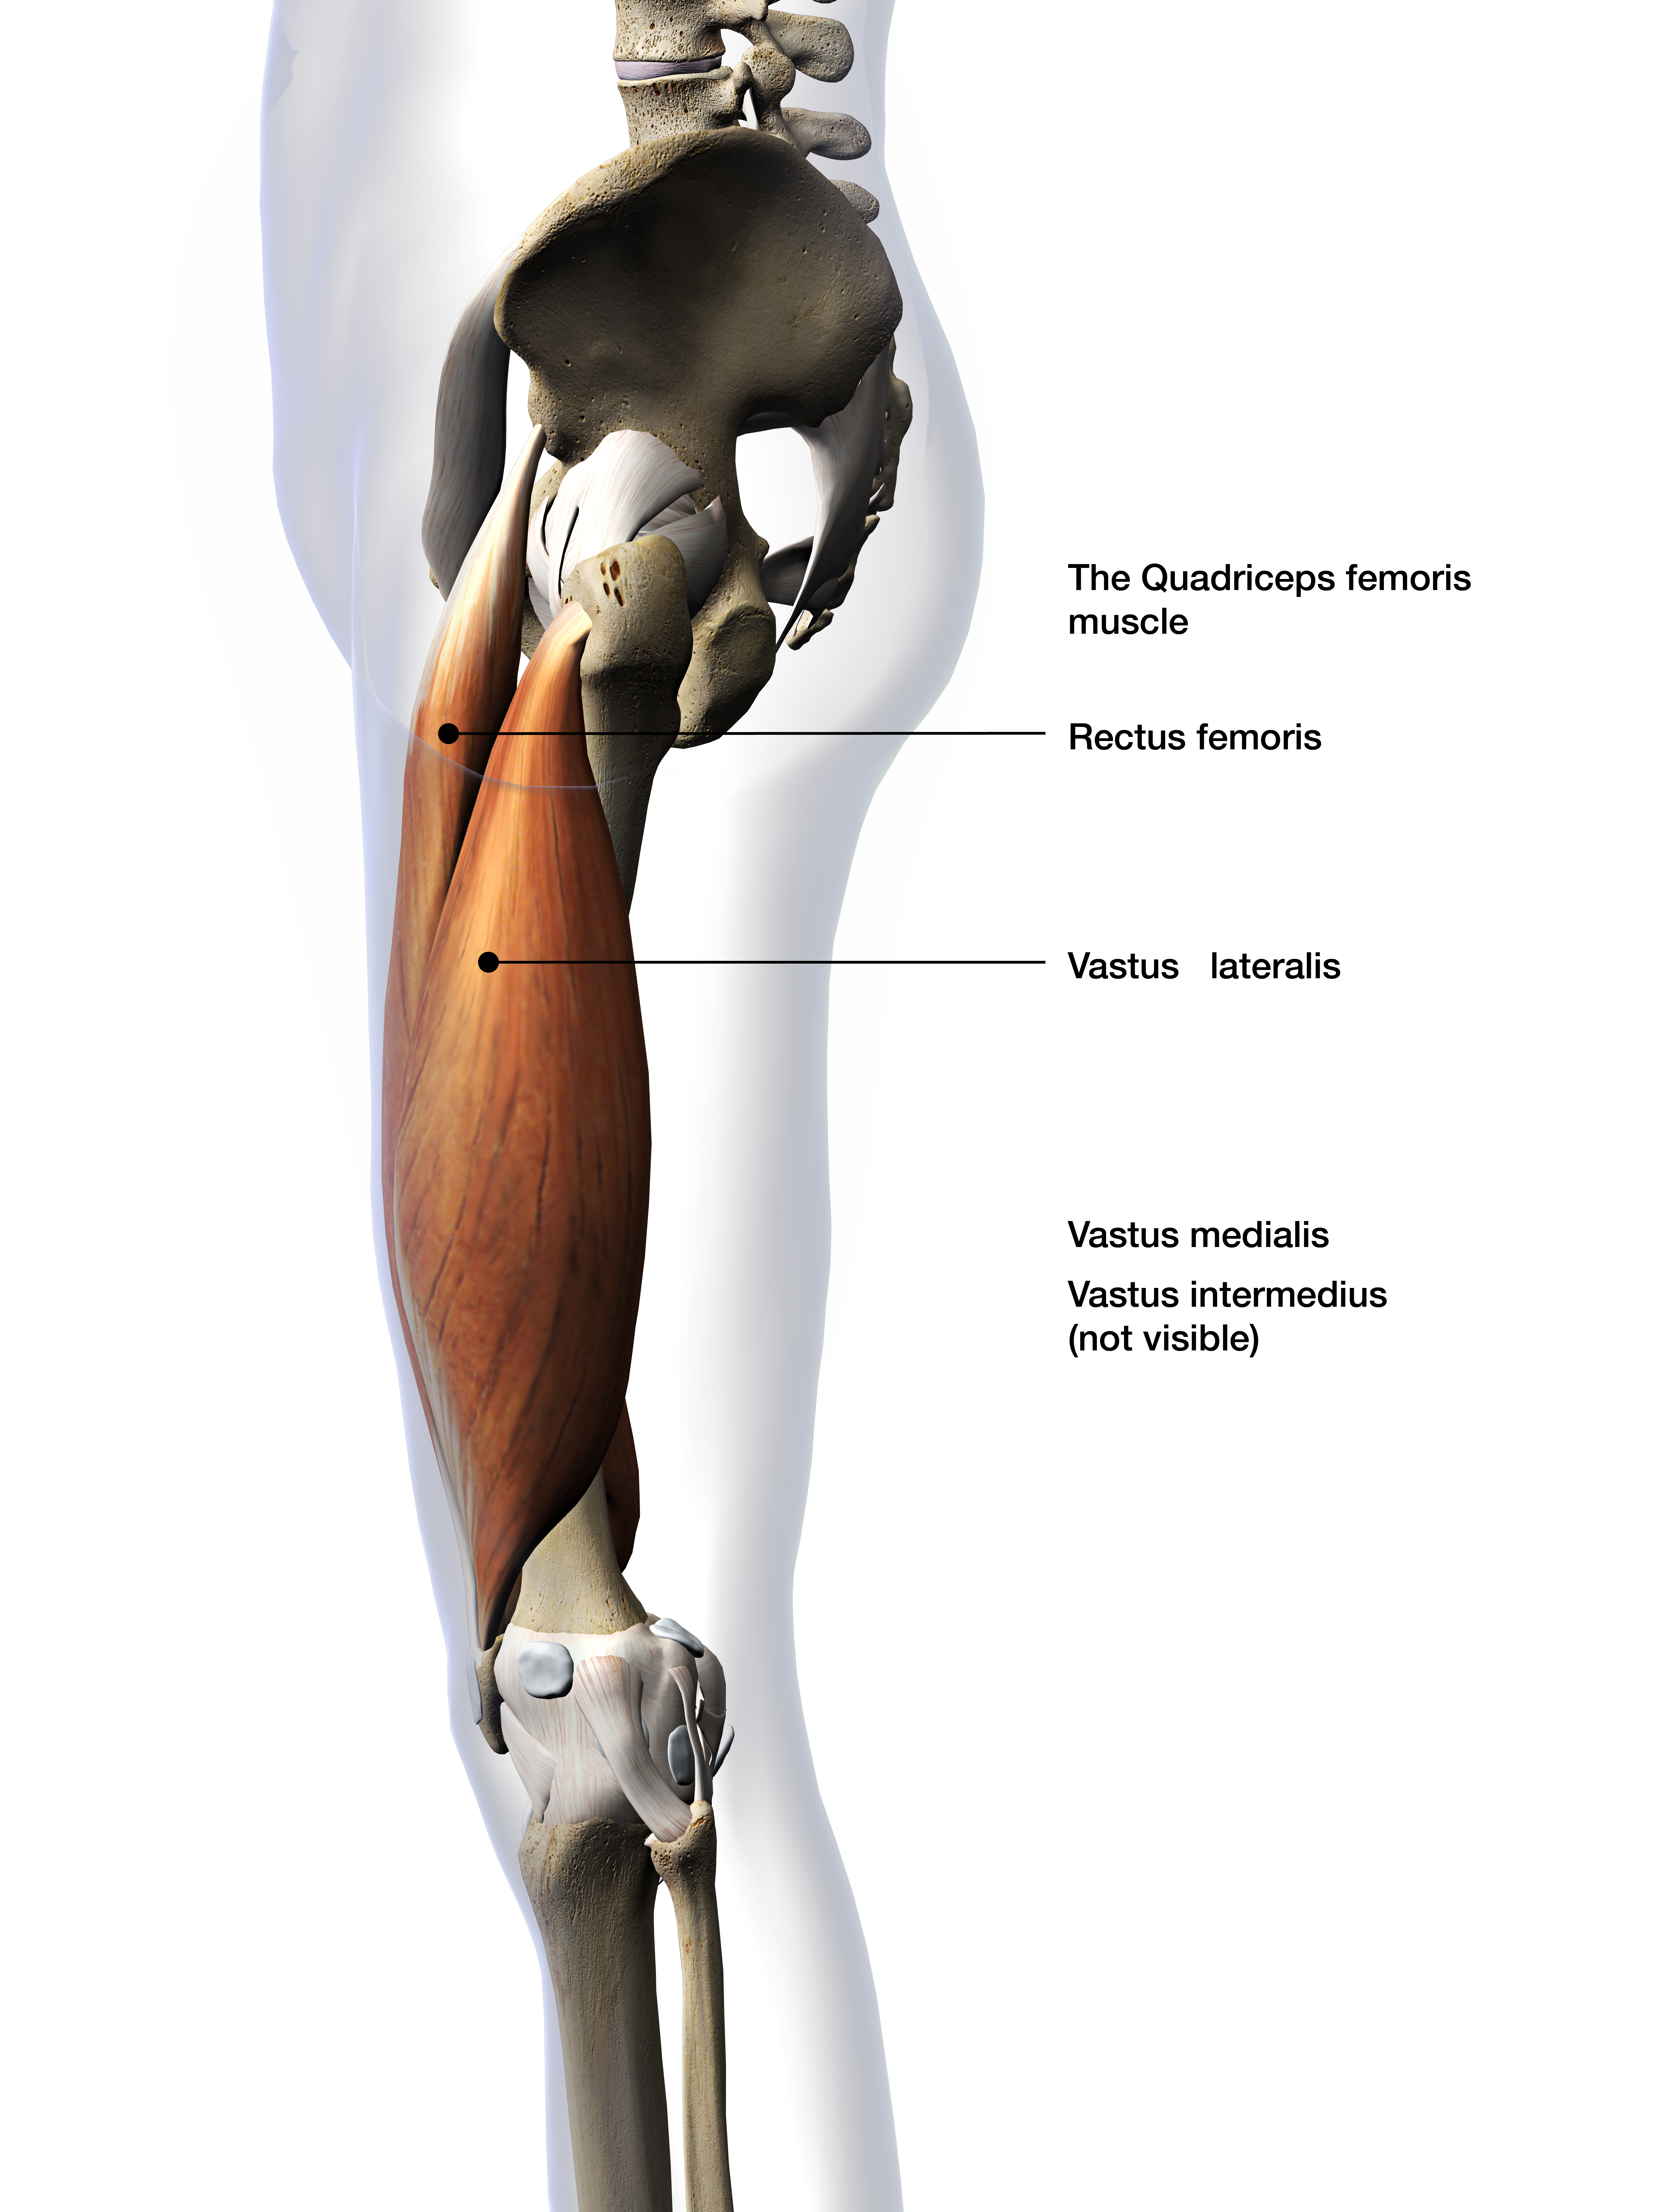 Anatomical view of the quadricep muscle group